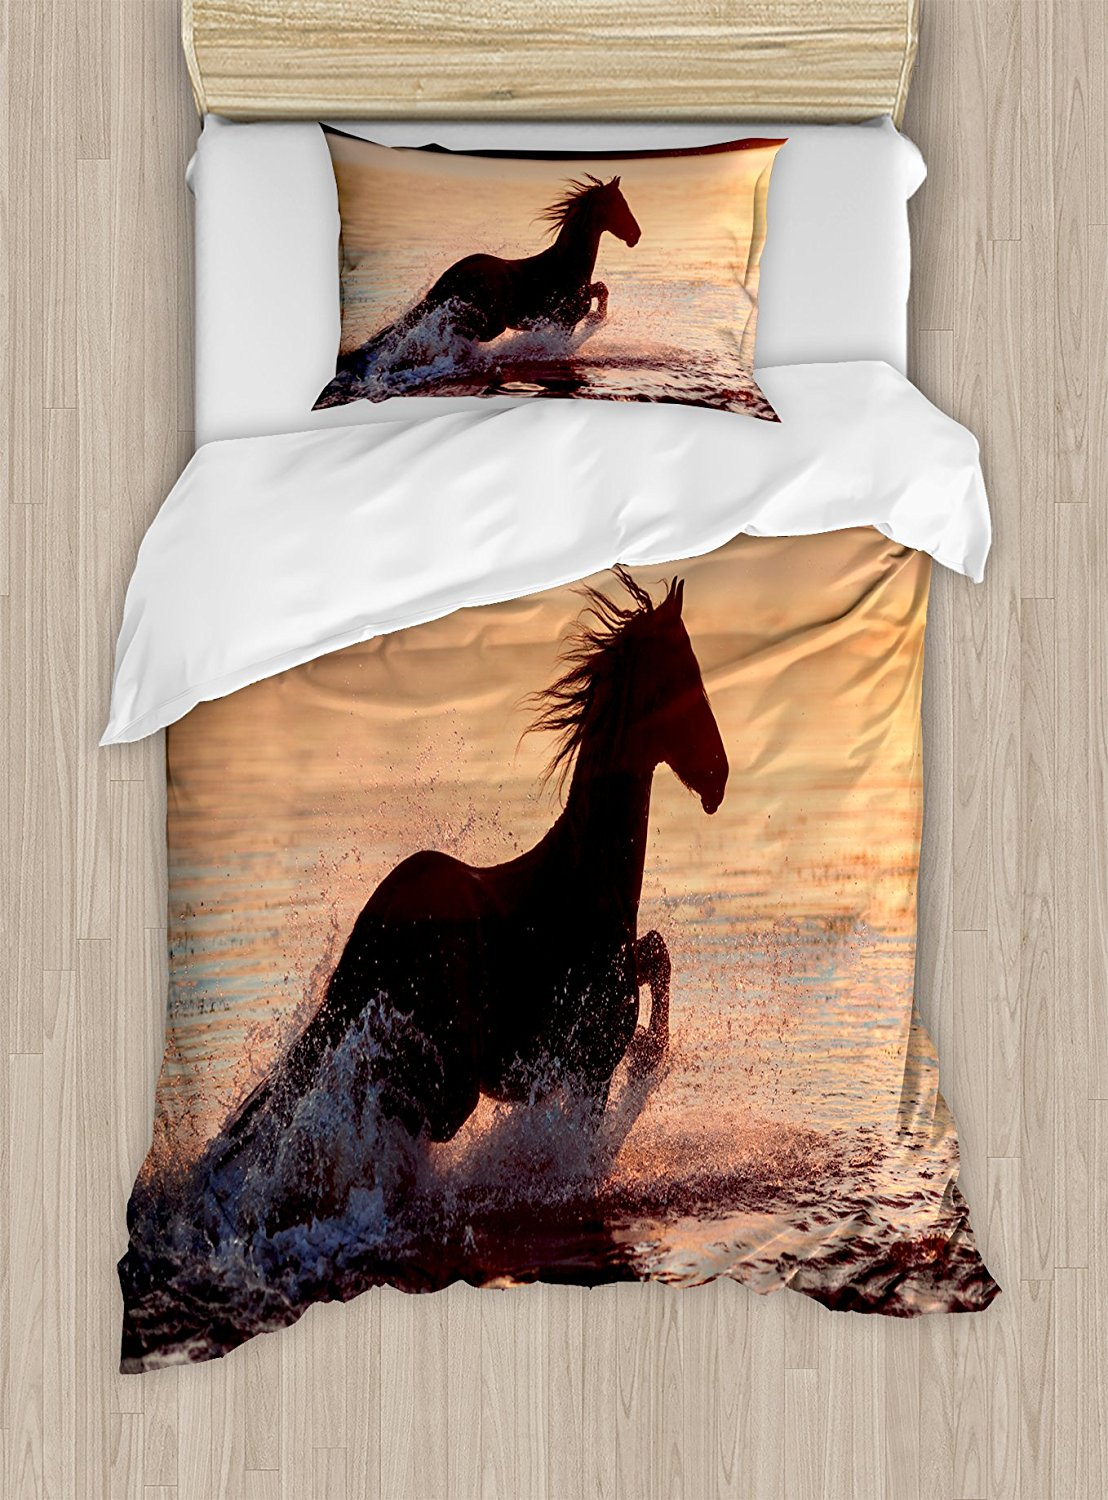 Equestrian Duvet Cover Set Horse Sea at Sunset Time Horizon Speed Exotic Nature Animal Picture Art Decorative 4pcs Bedding Set